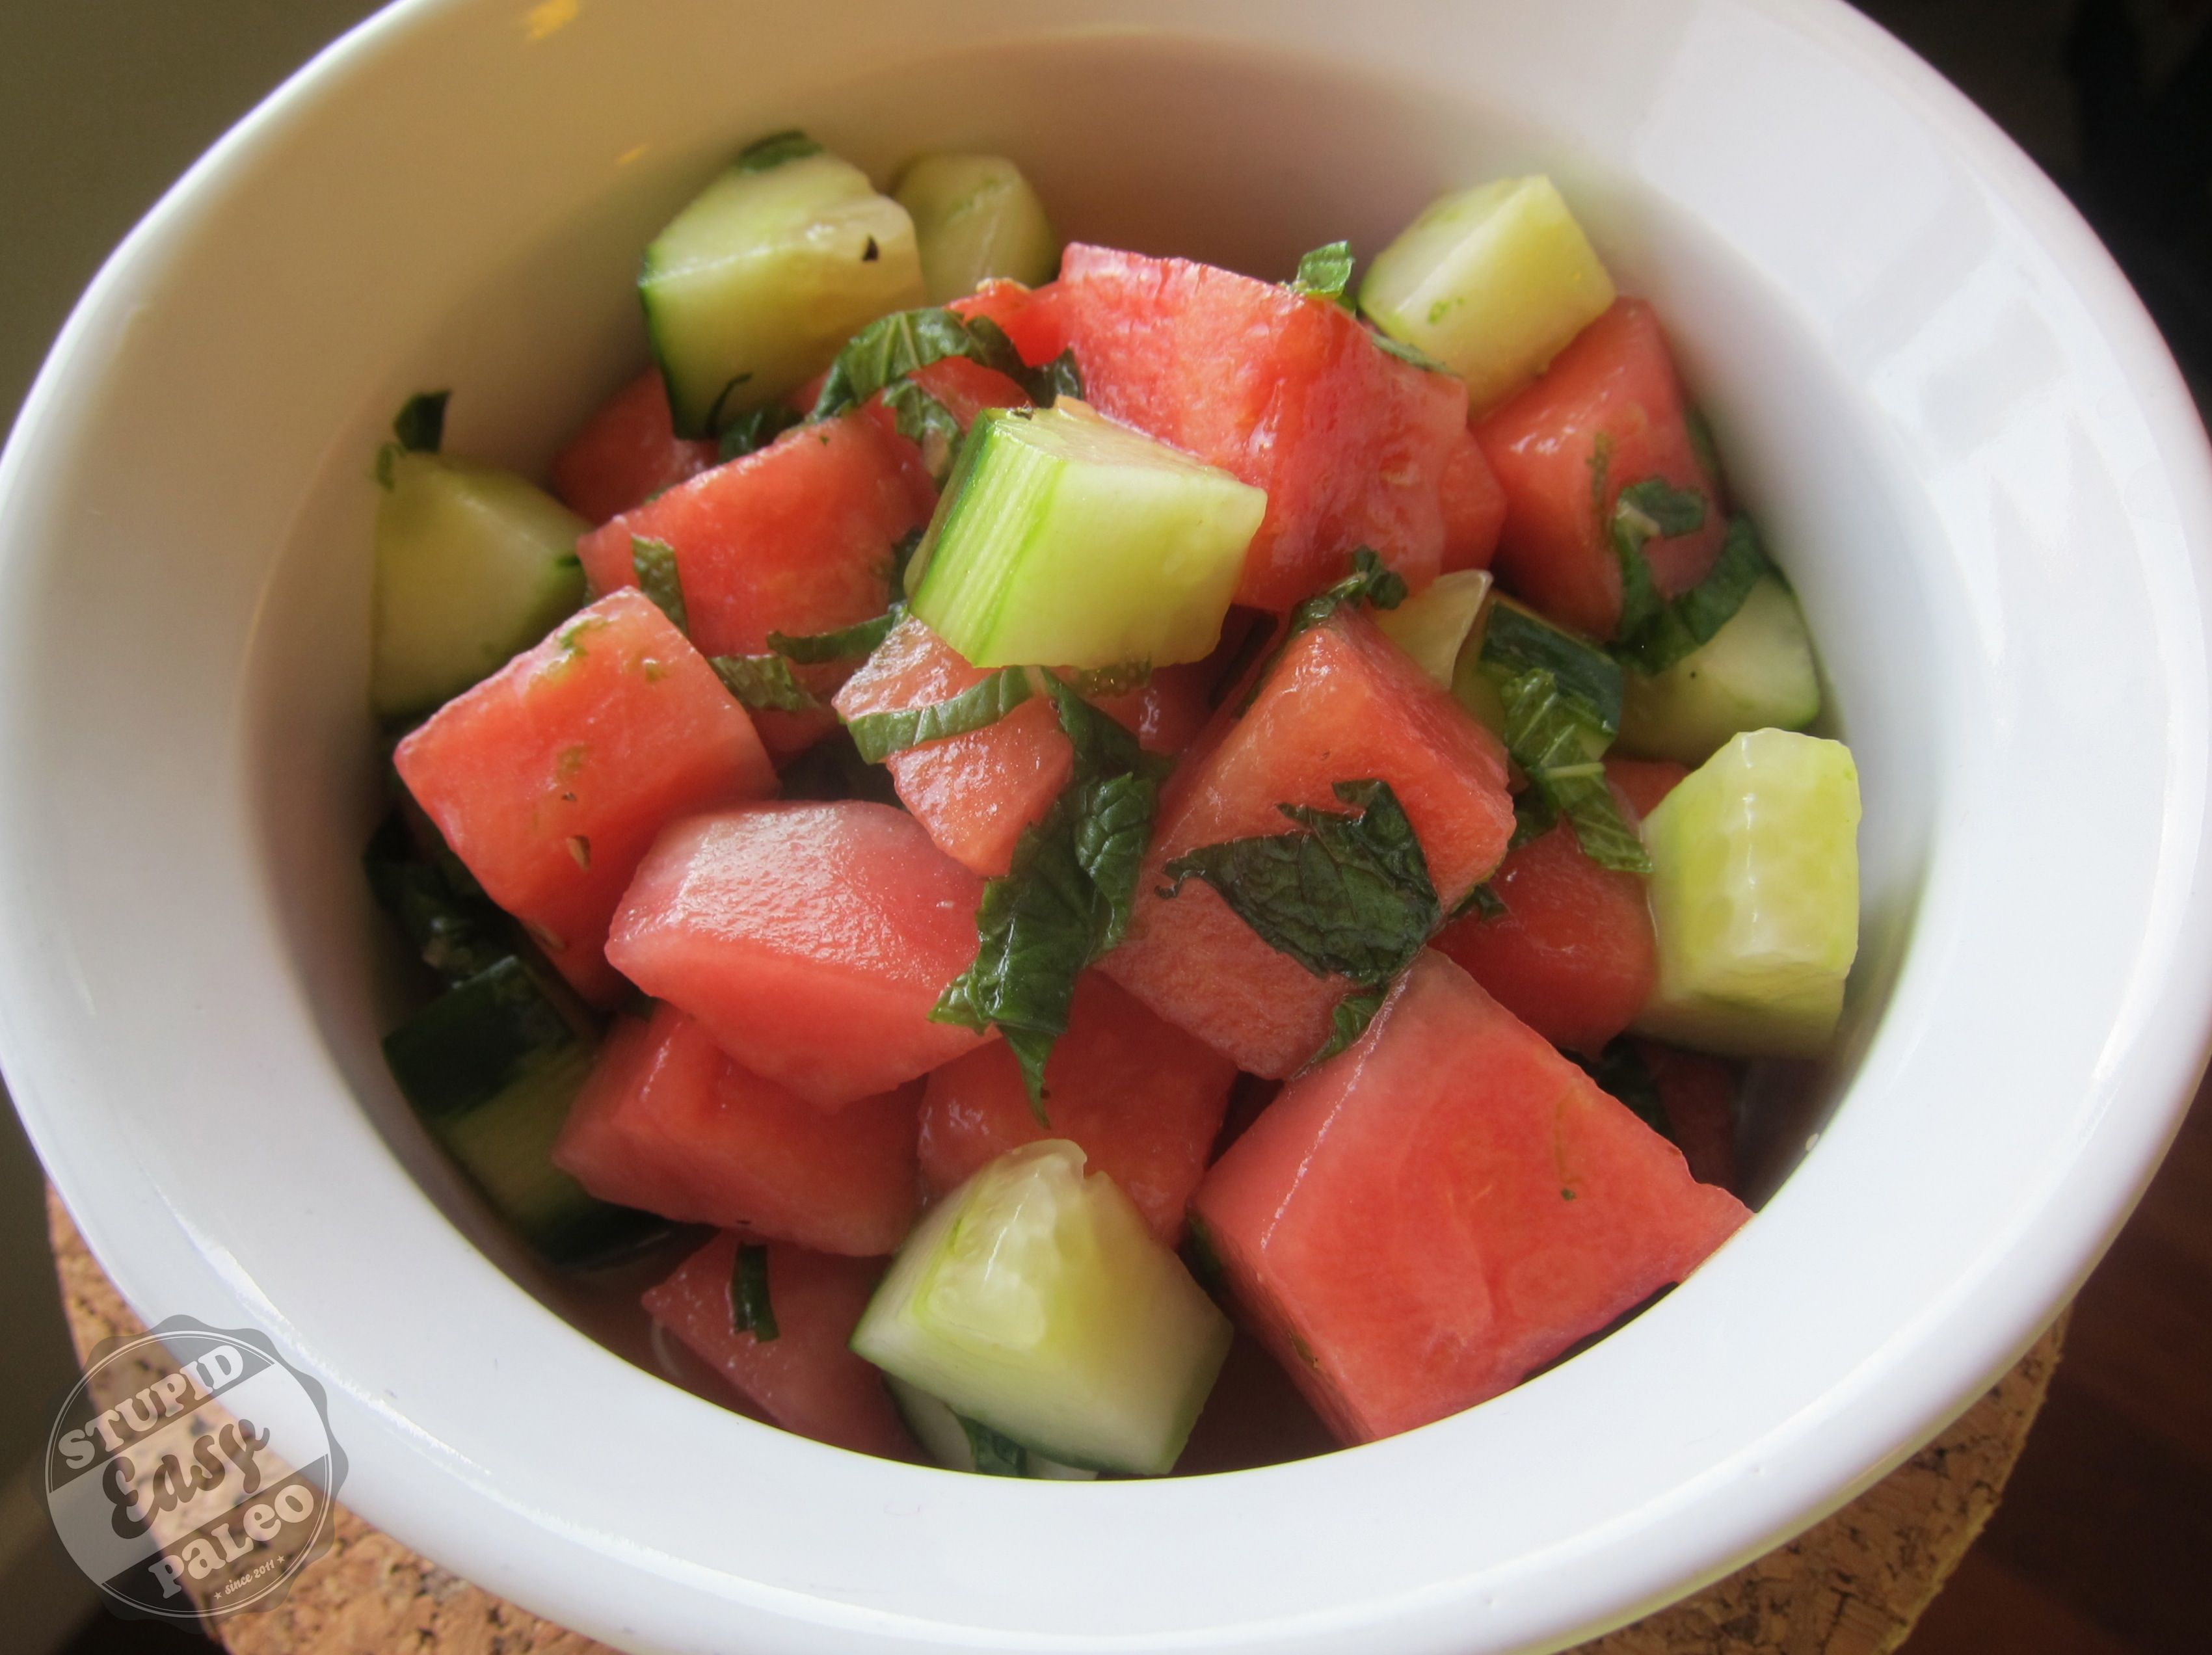 This watermelon and peppermint drink is quick to make, and is wonderfully refreshing on hot summer days.4/5(10).